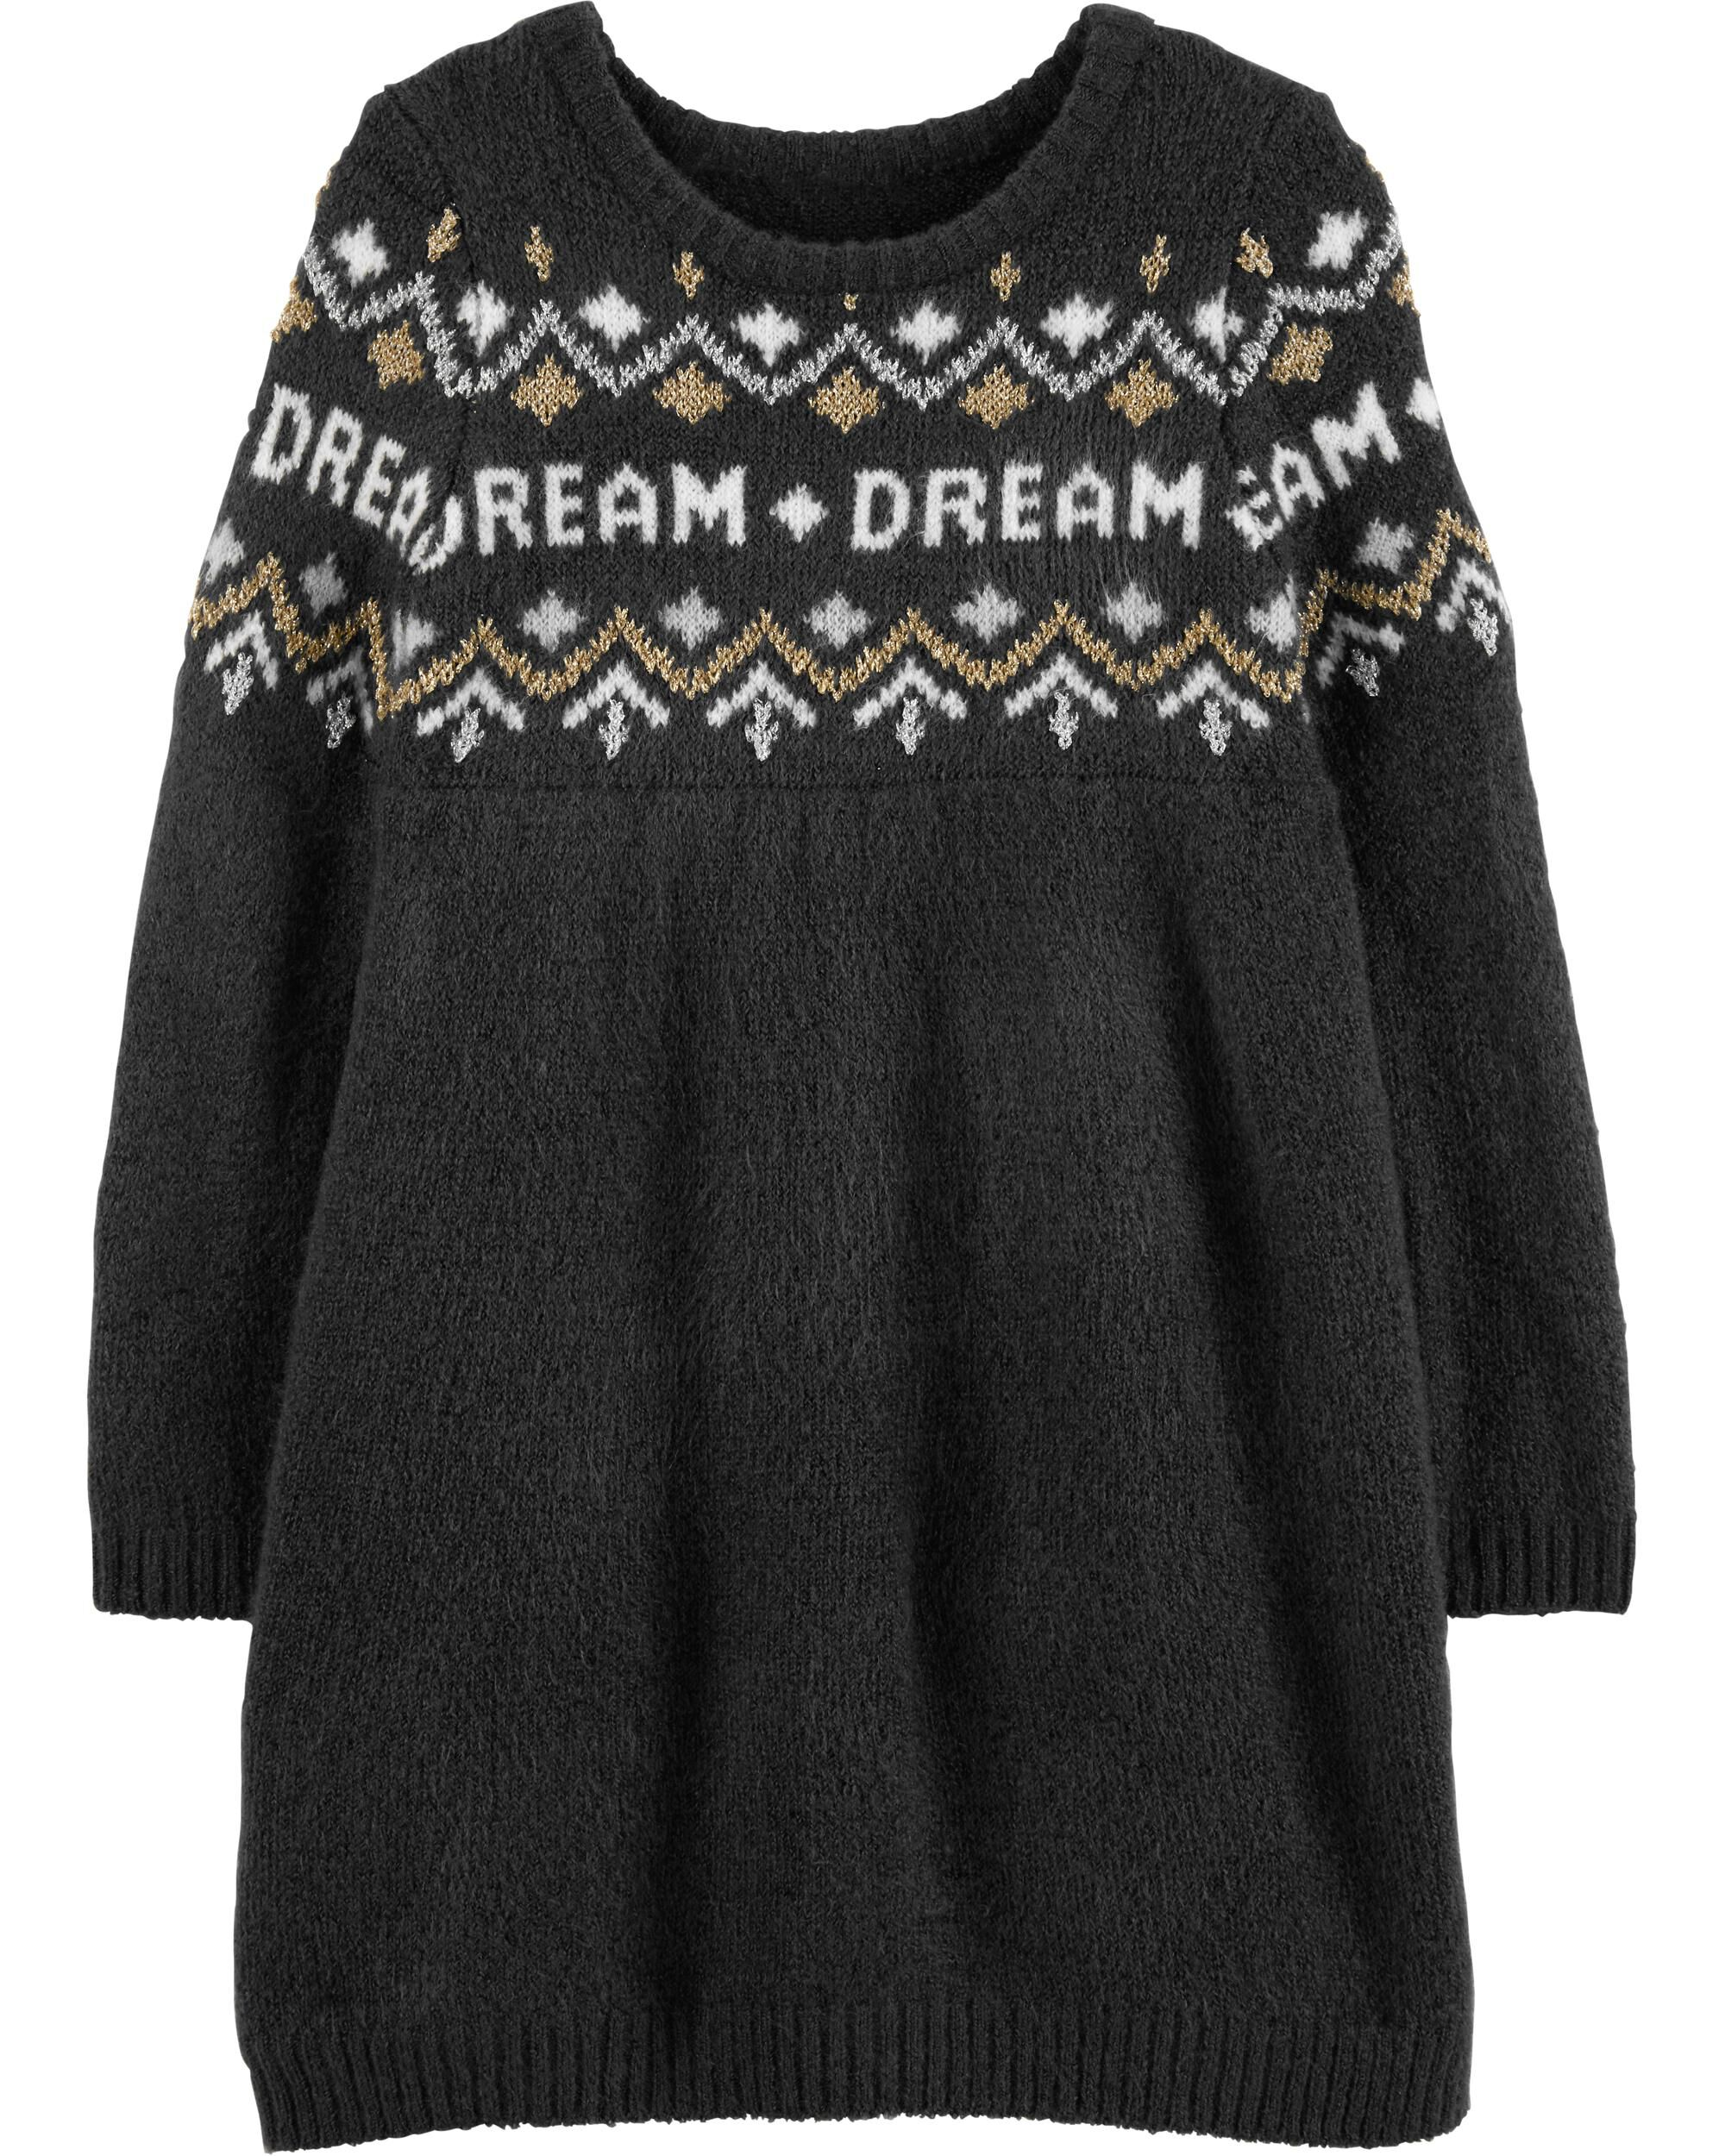 864aa84d004 Toddler Girl Glitter Dream Sweater Dress